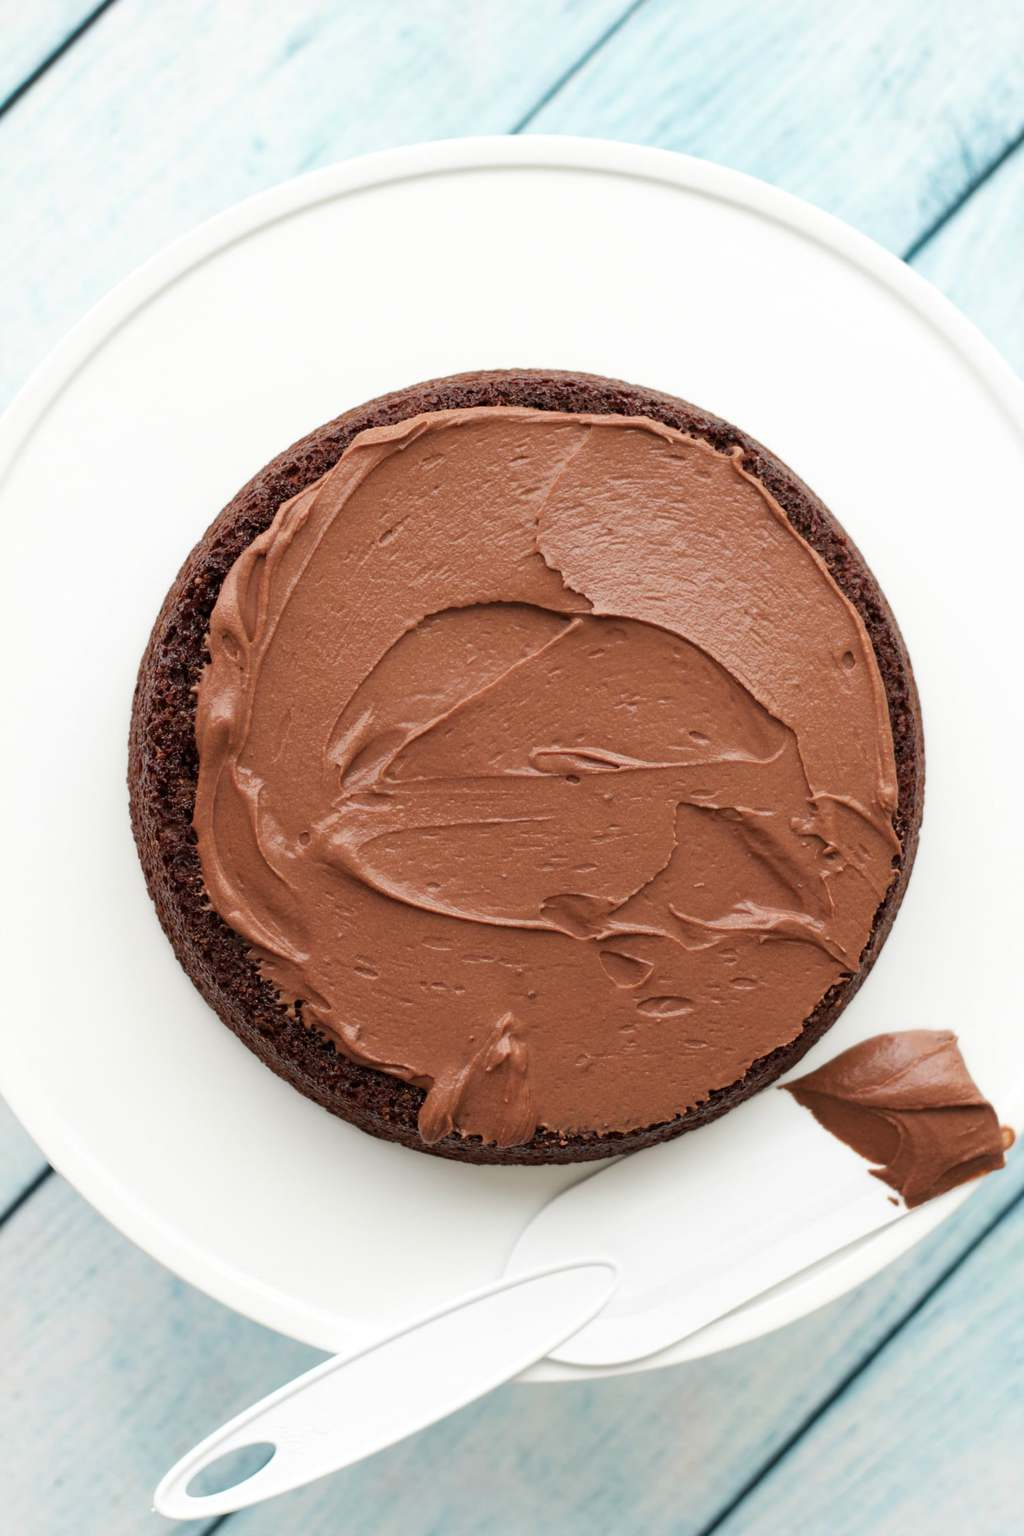 Vegan Chocolate Ganache Frosting - Ideal for cakes, cupcakes or cookies! #vegan #lovingitvegan #glutenfree #dairyfree #dessert